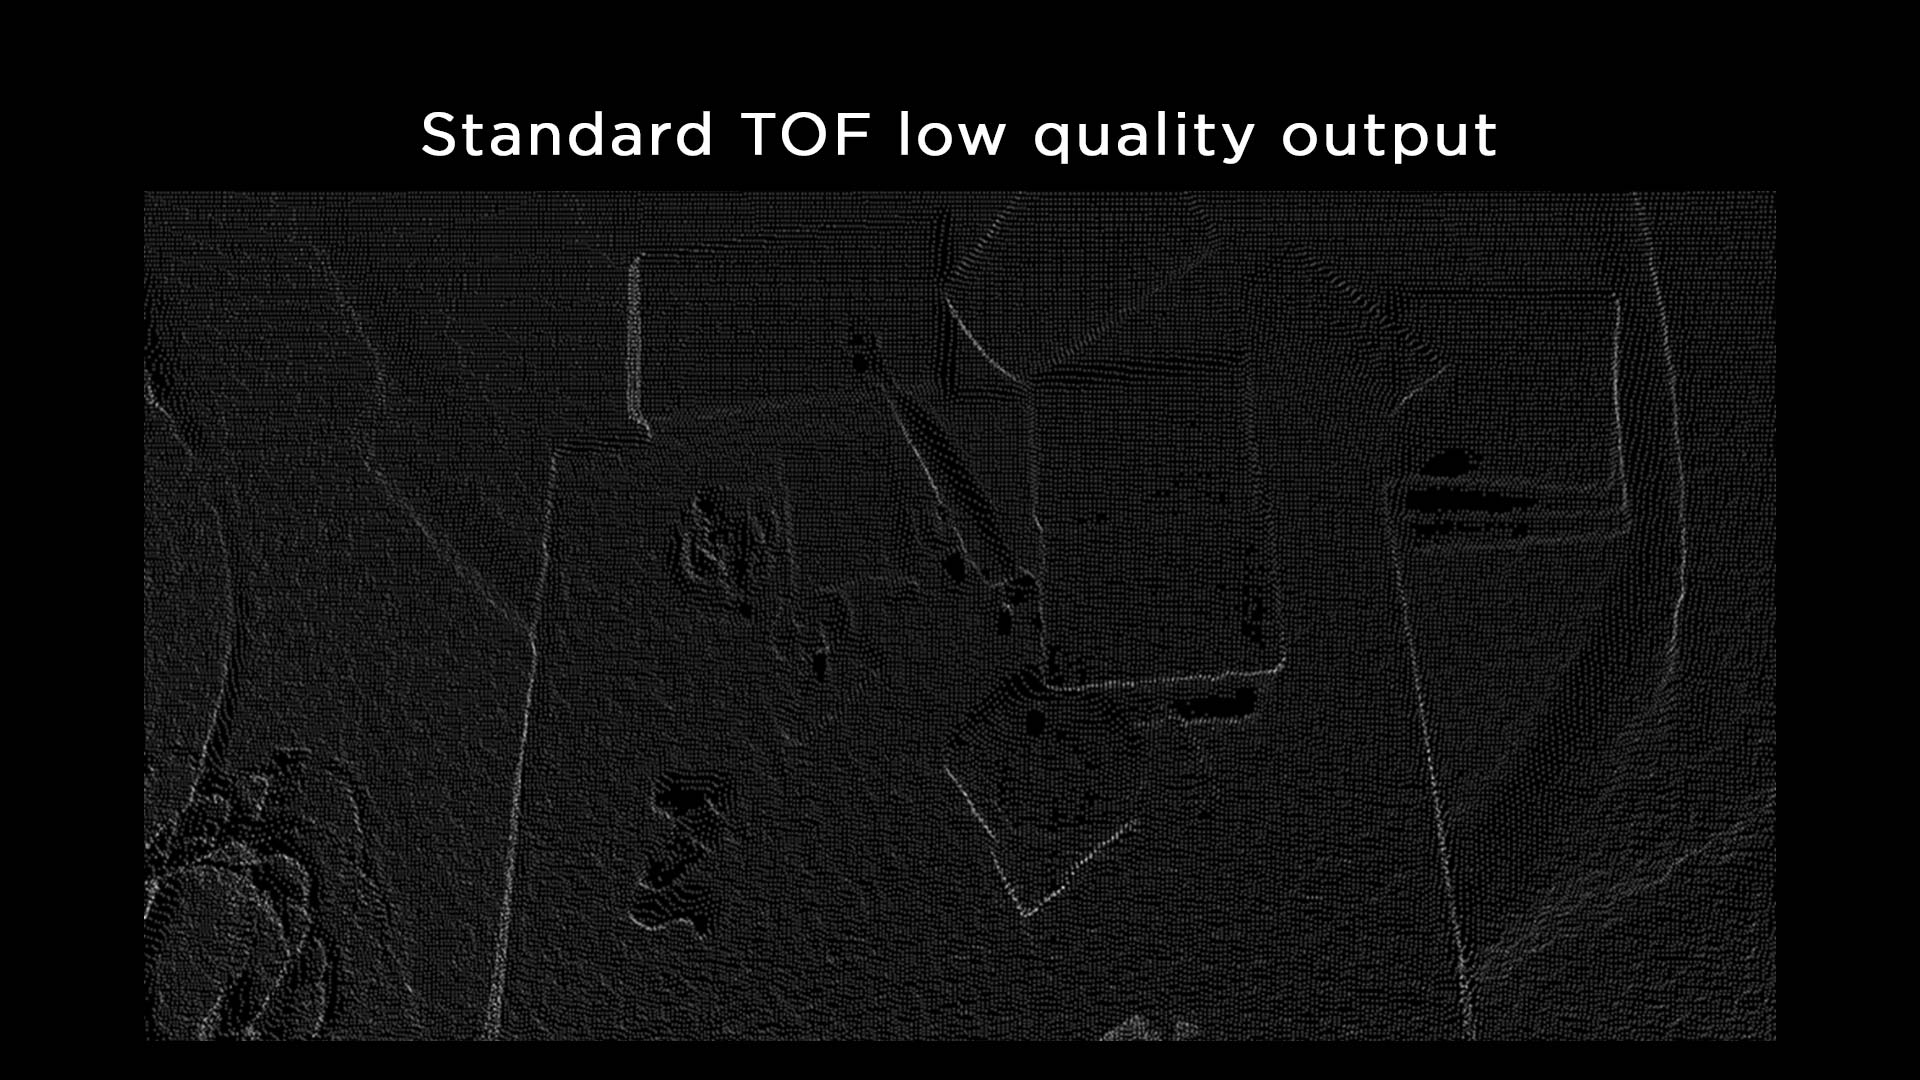 Low quality TOF 3D bin-picking objects